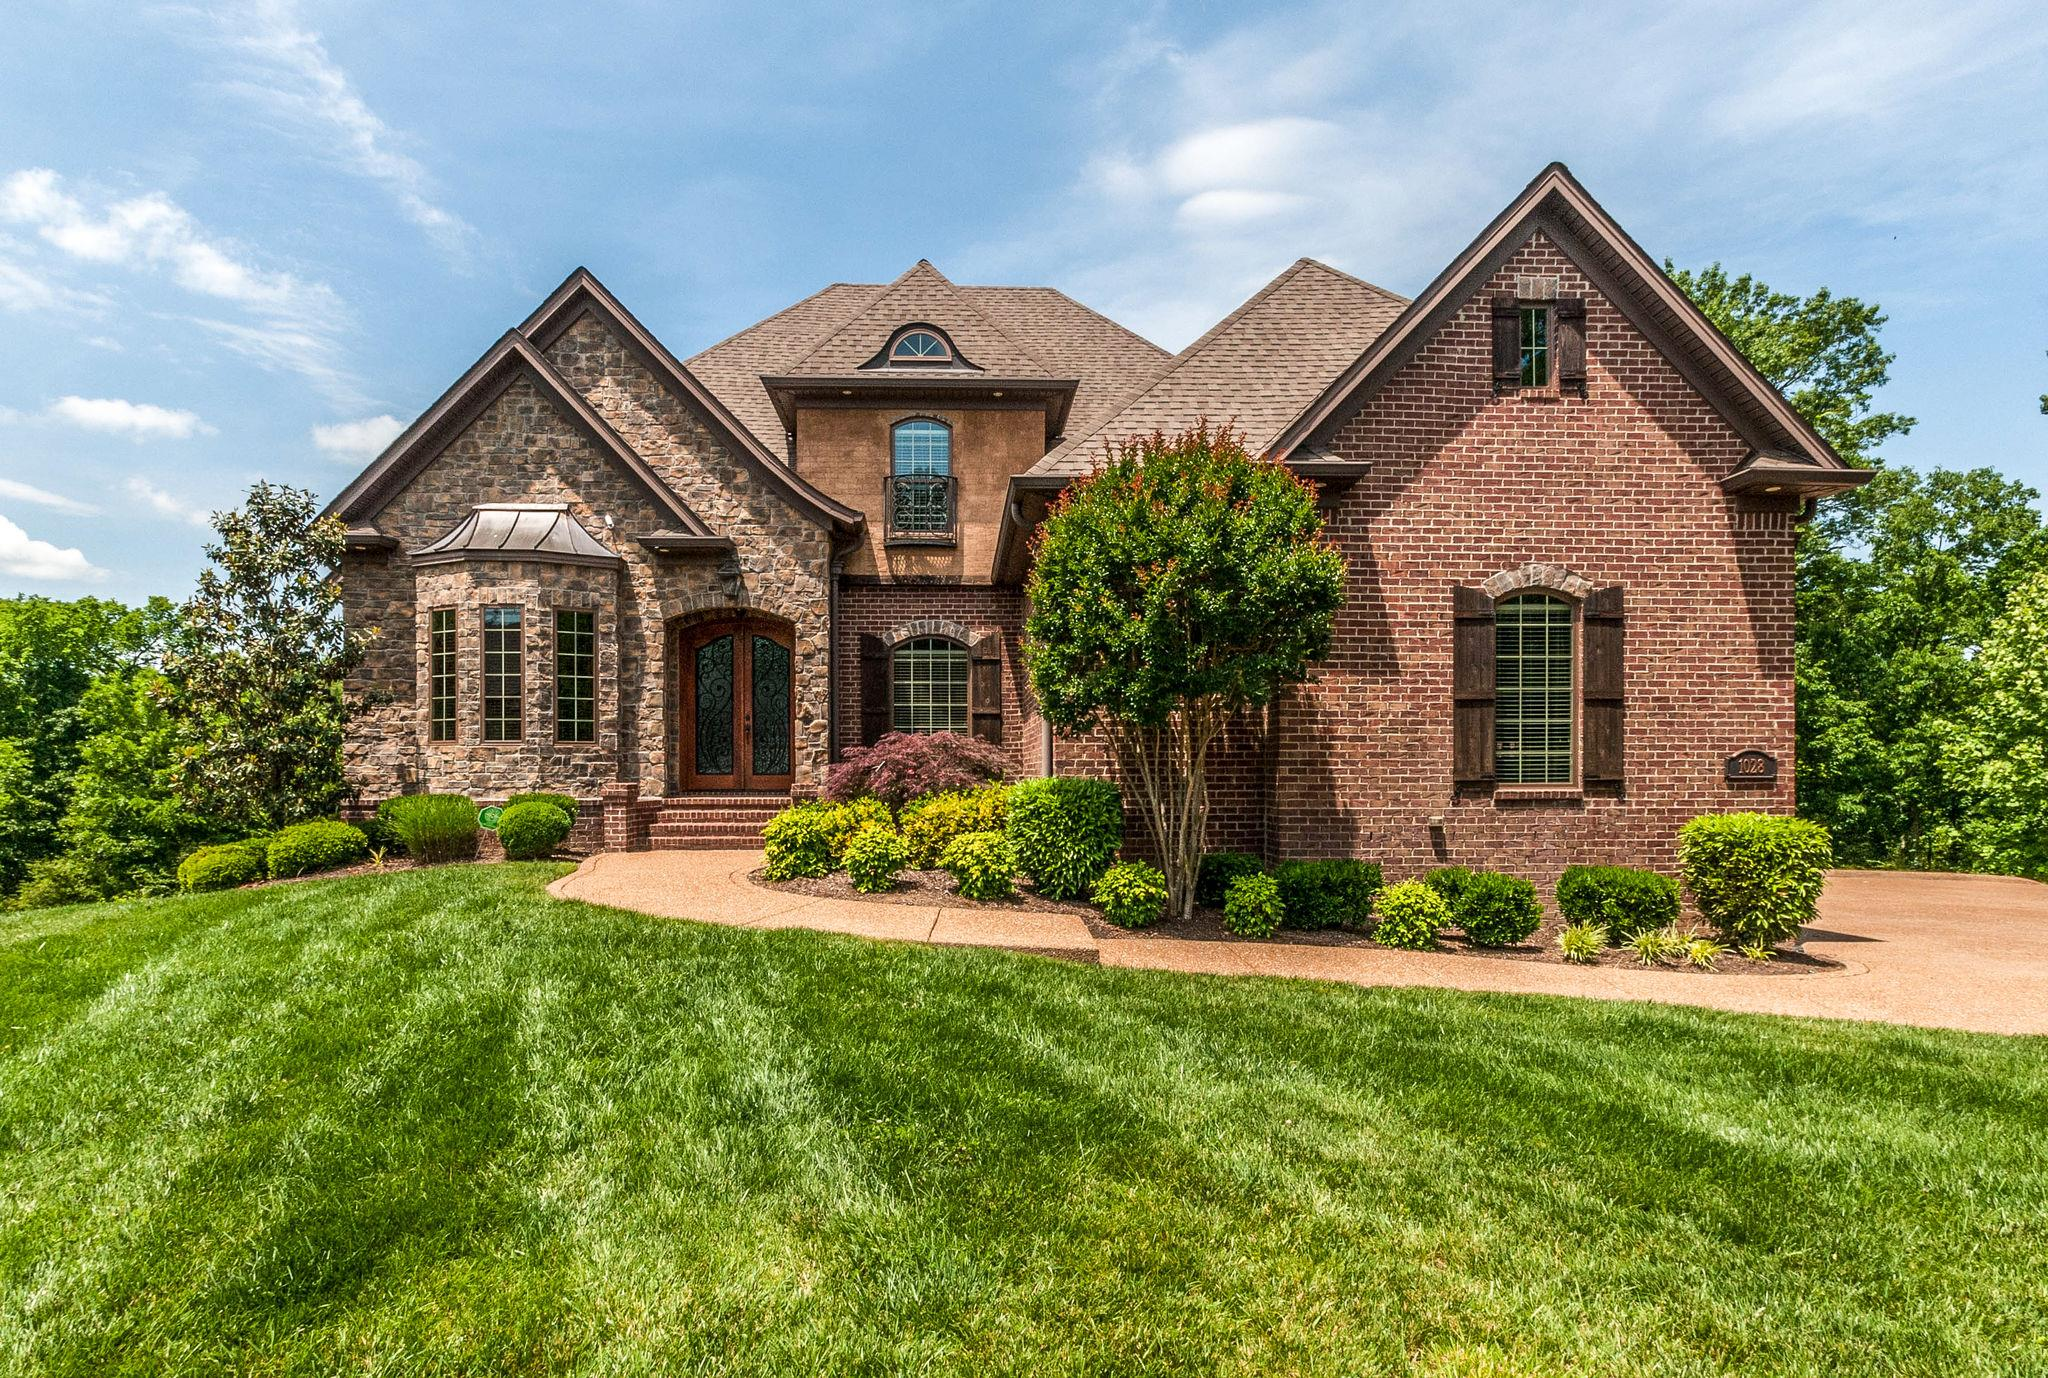 1028 Rosemont Terrace, Smyrna, TN 37167 - Smyrna, TN real estate listing